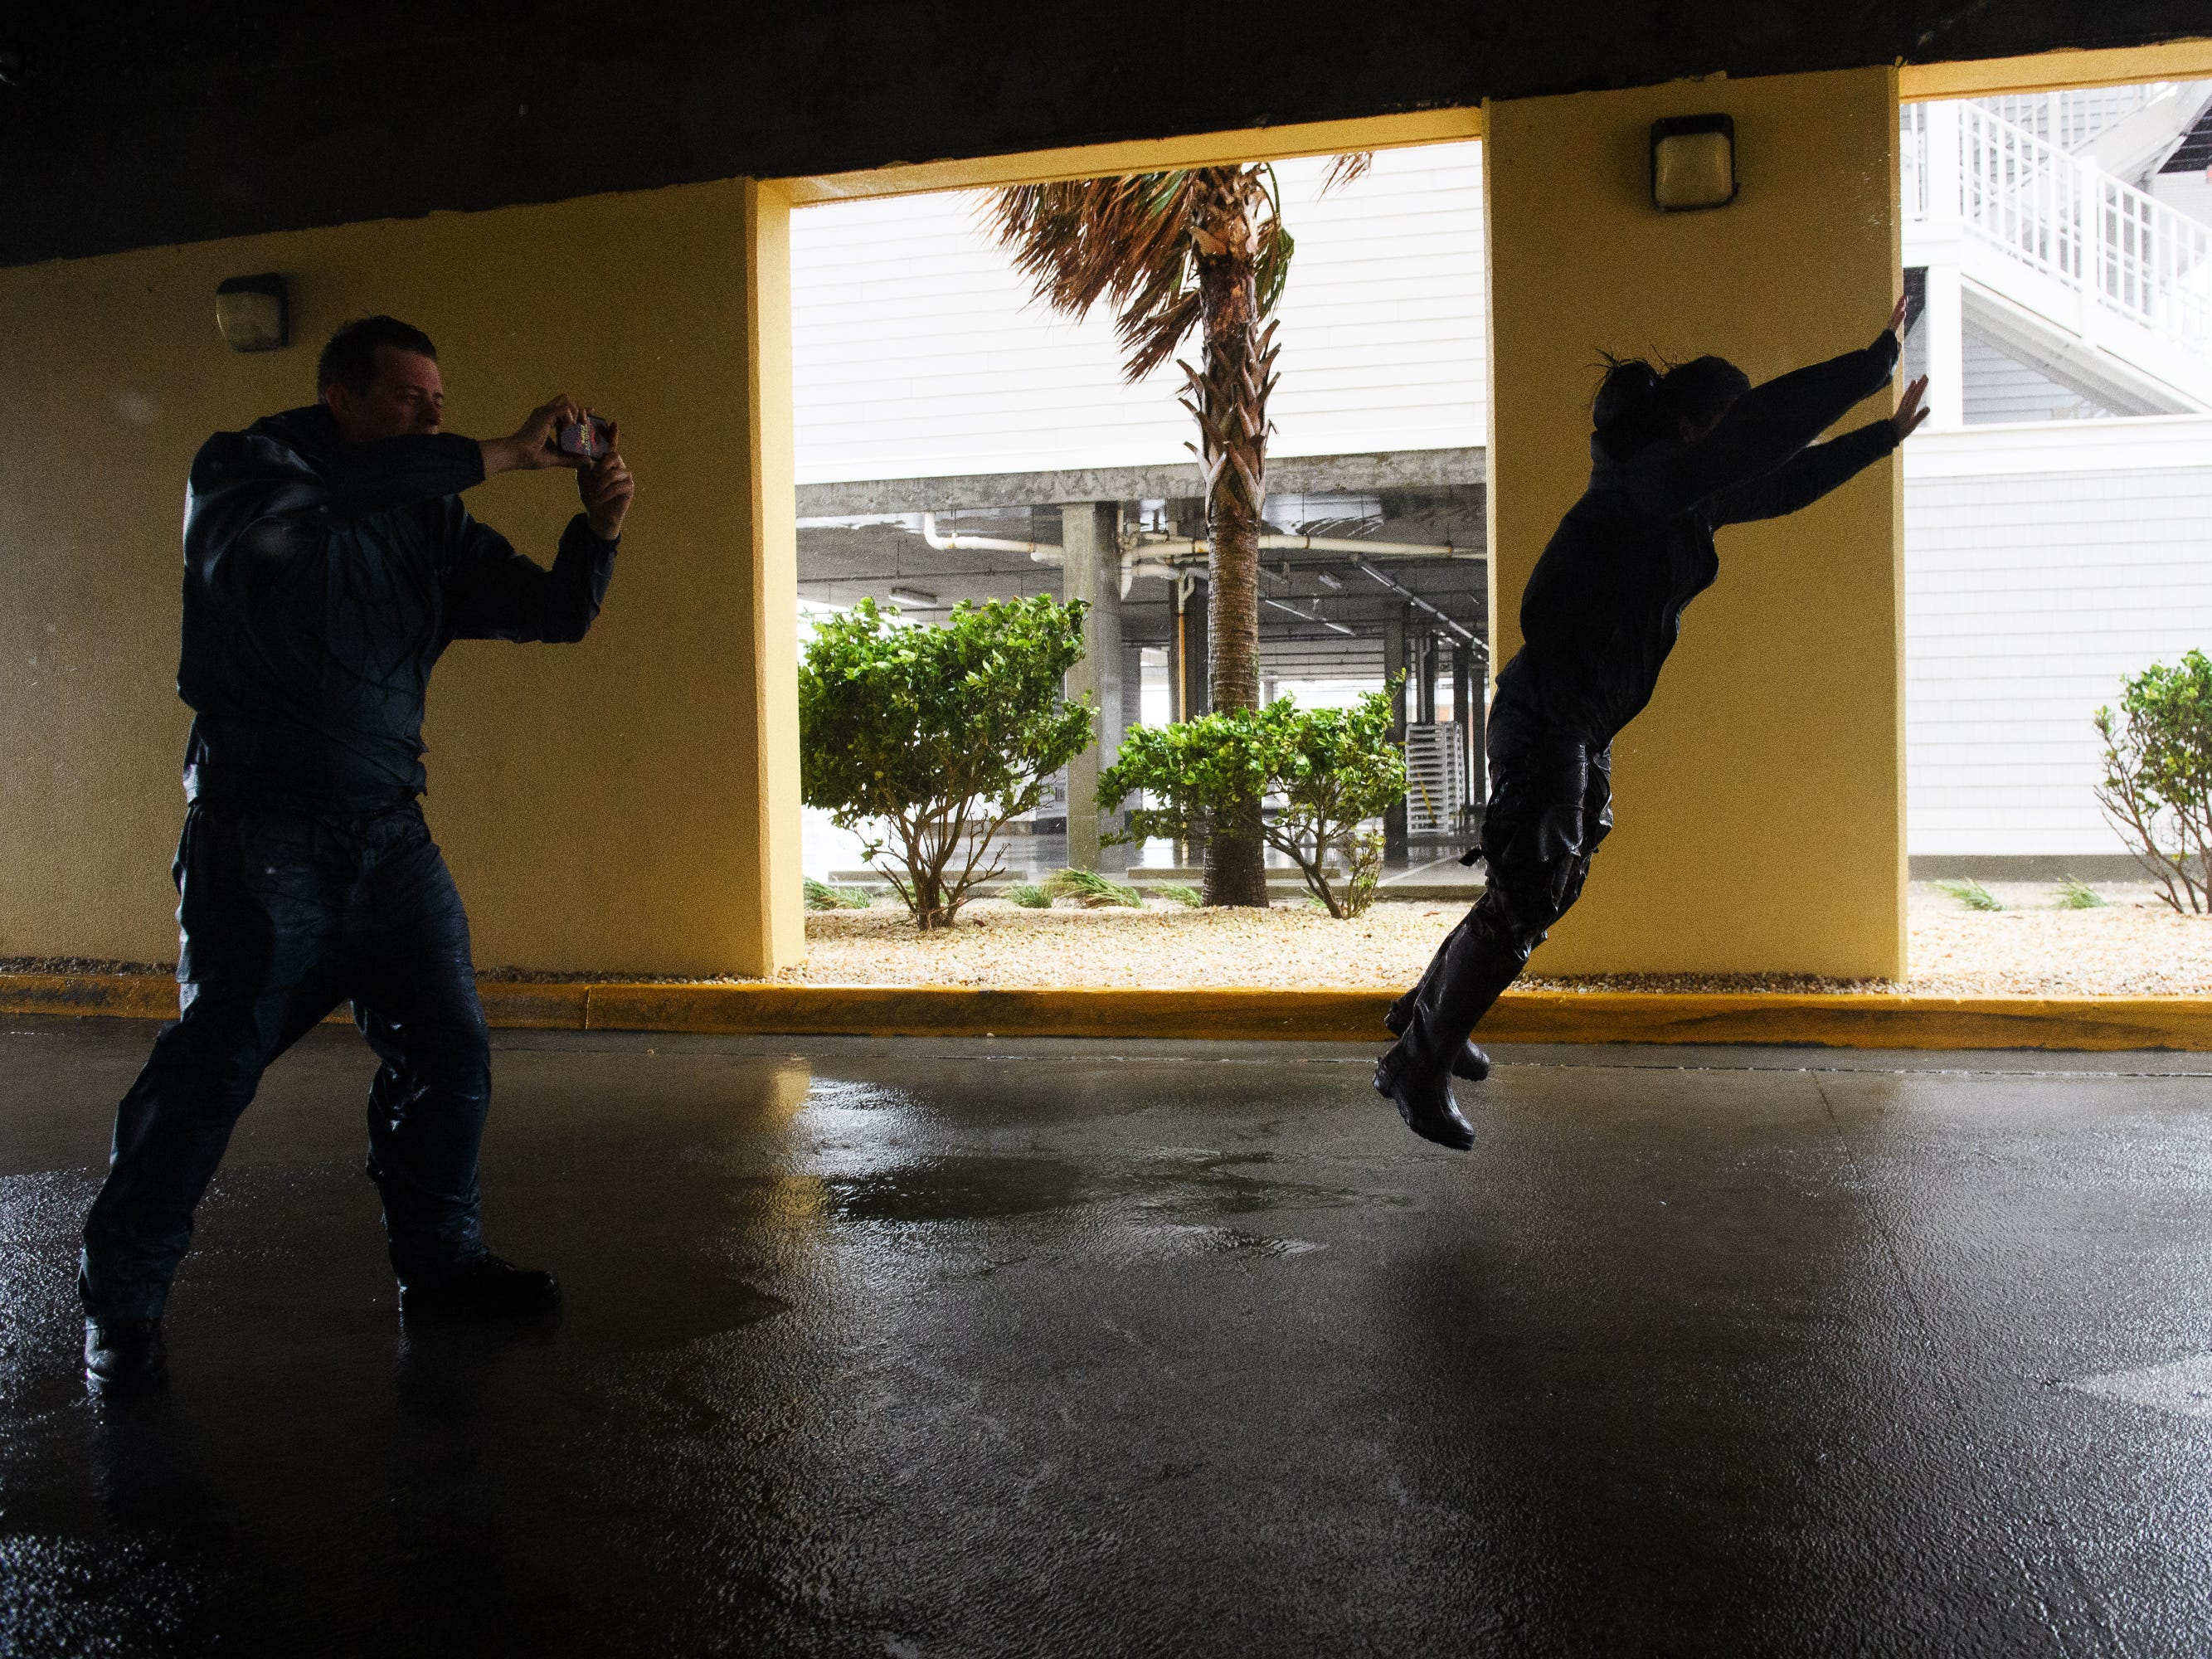 Storm chasers Brandon Jarvis, left, and Emily Pike try to suspend themselves in the air in a wind tunnel at a parking garage in North Myrtle Beach as wind speeds begin to increase due to Hurricane Florence on Friday, Sept. 14, 2018.